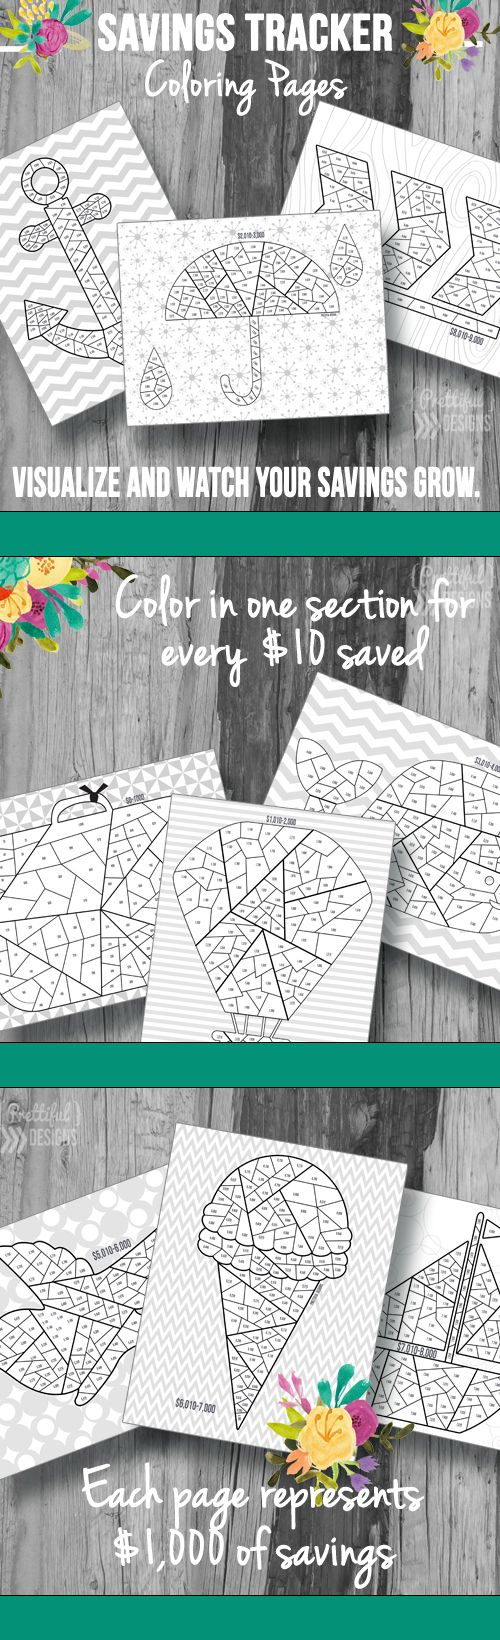 Savings Tracker Coloring Pages. Free Printable from Prettiful ...